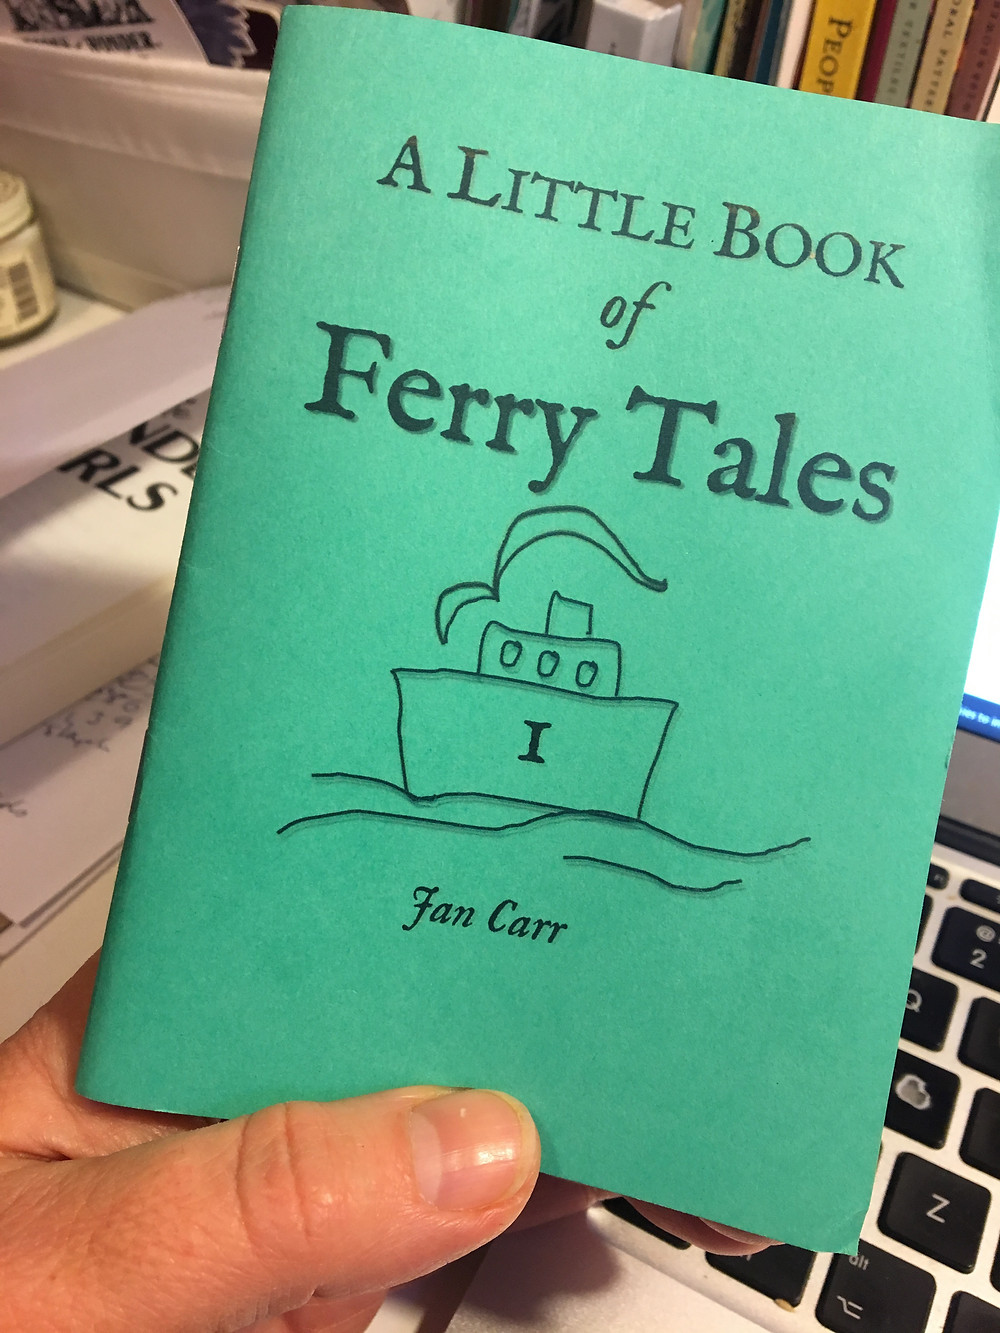 made at home sample mock up of A Little Book of Ferry Tales, green cover with title and a naive line drawing of a ferry boat.